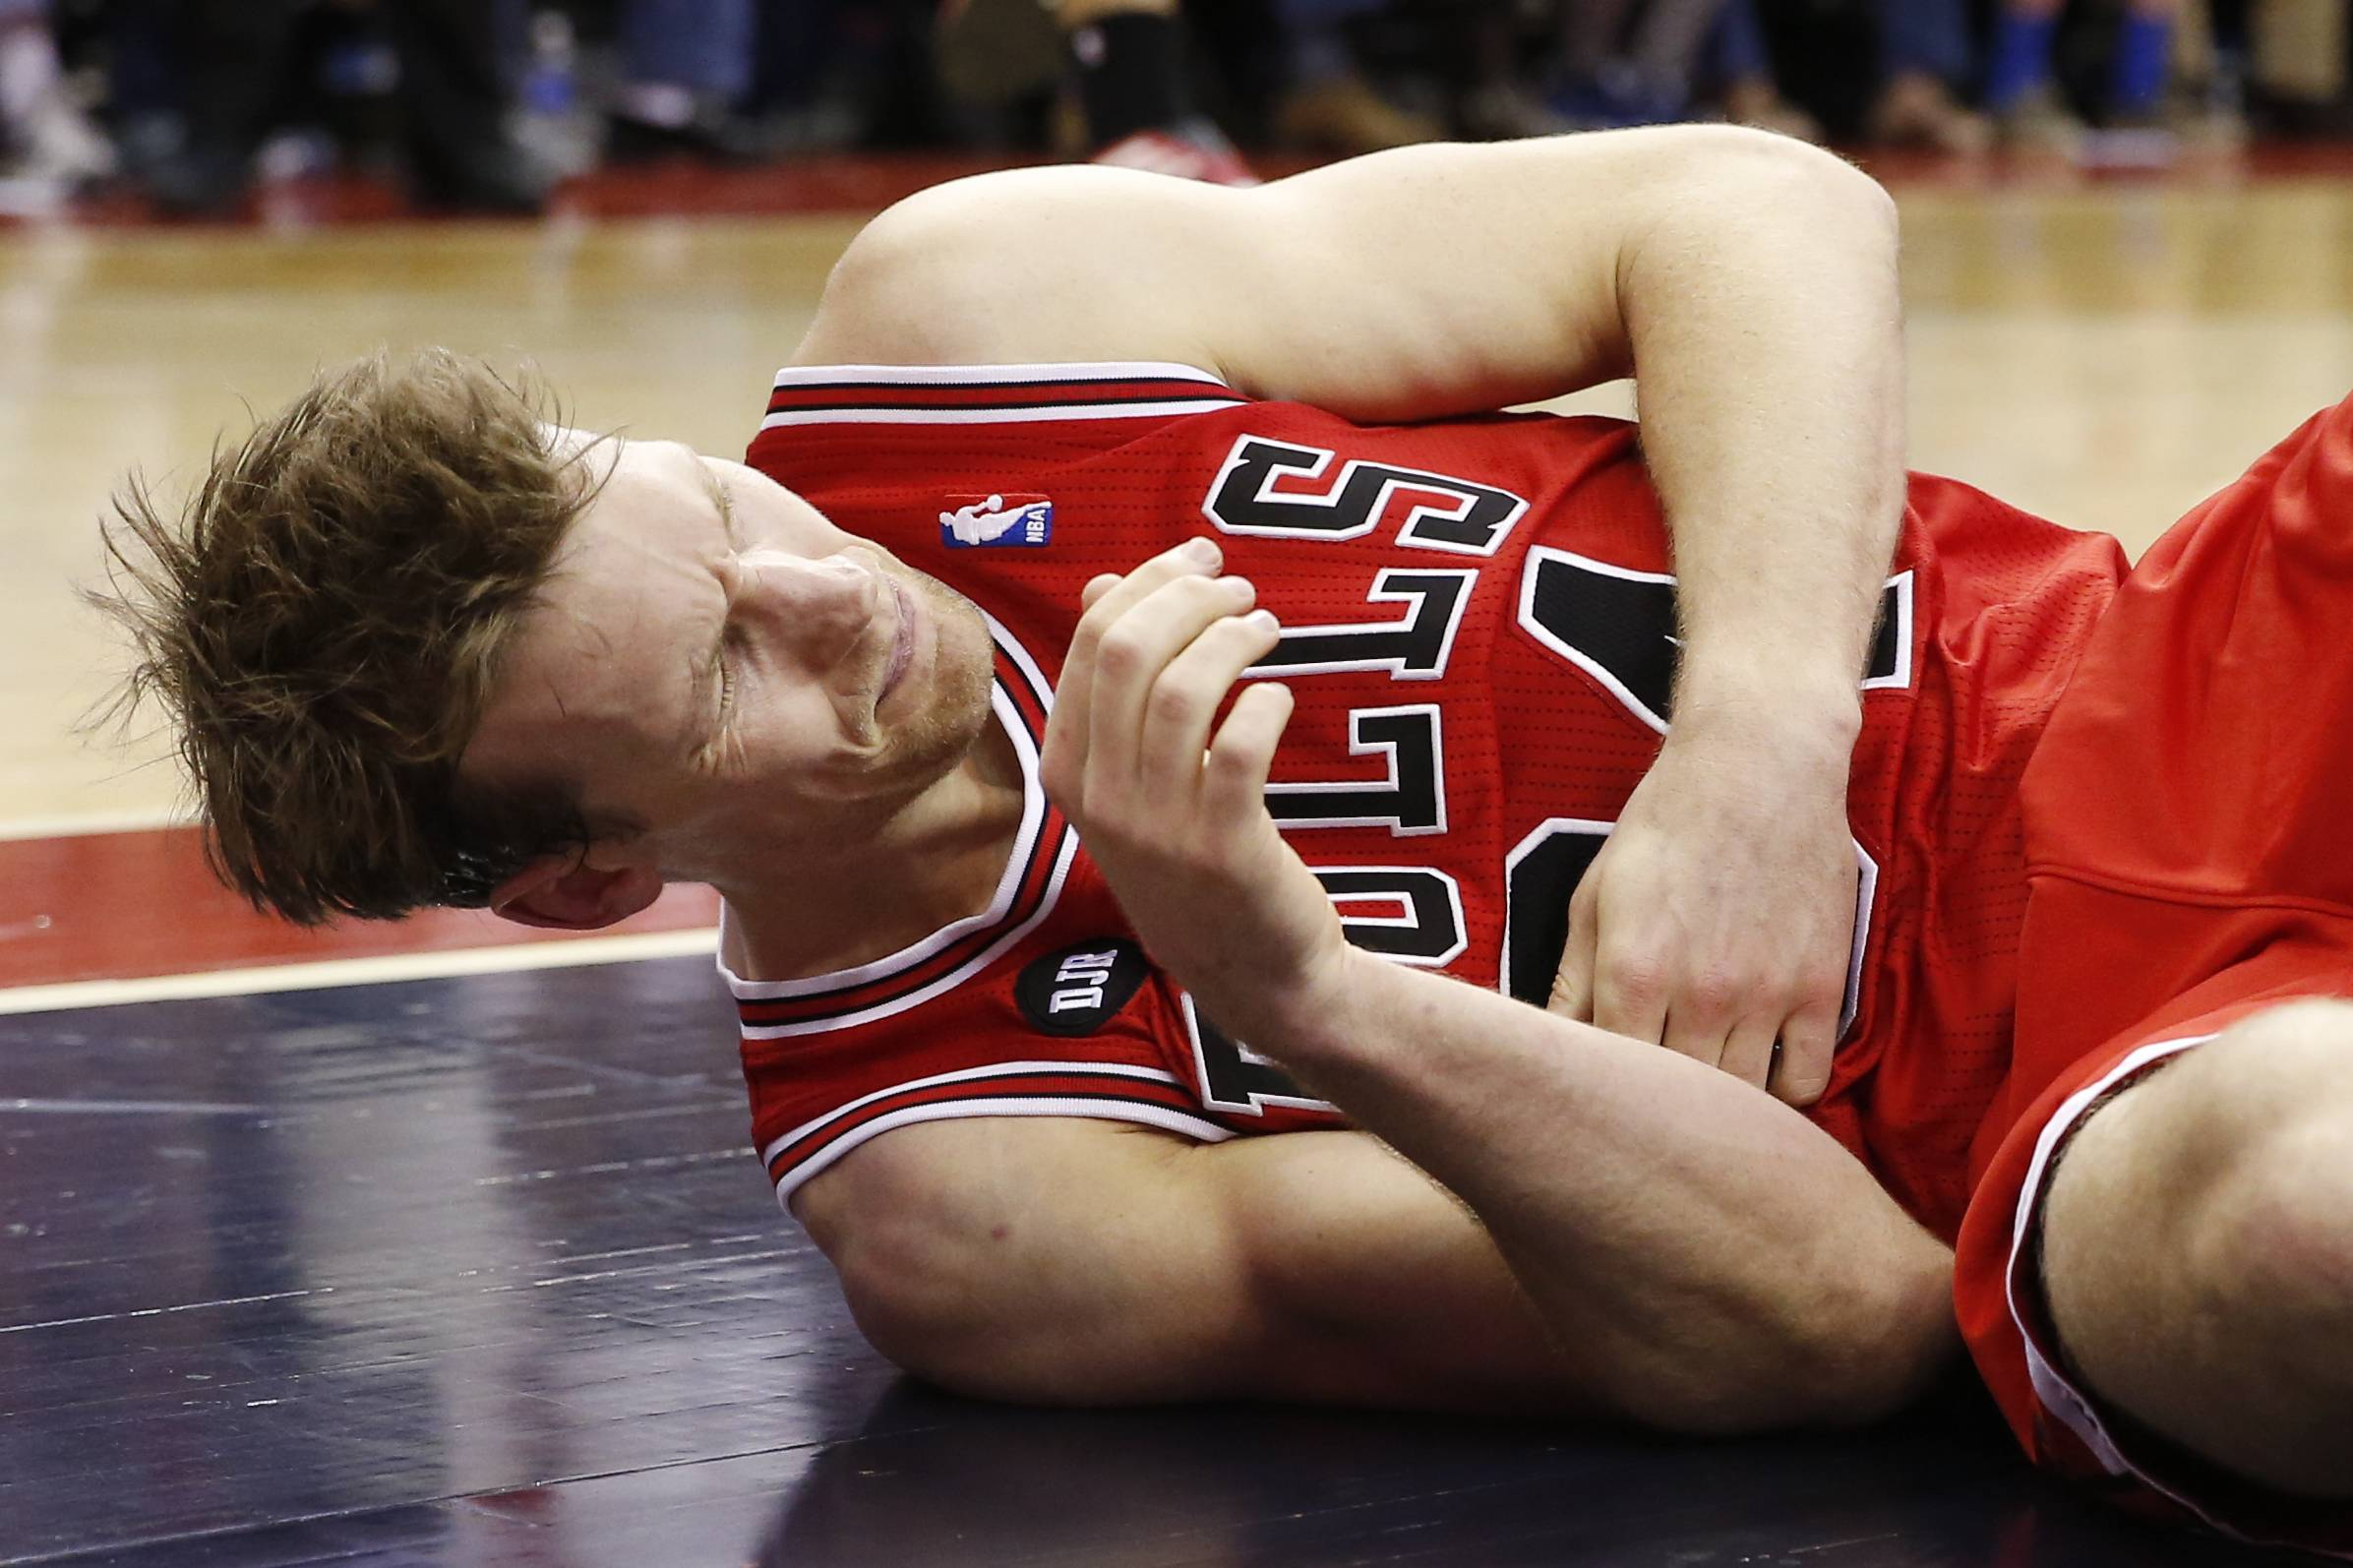 Chicago Bulls forward Mike Dunleavy lies on the court after an injury during the second half.